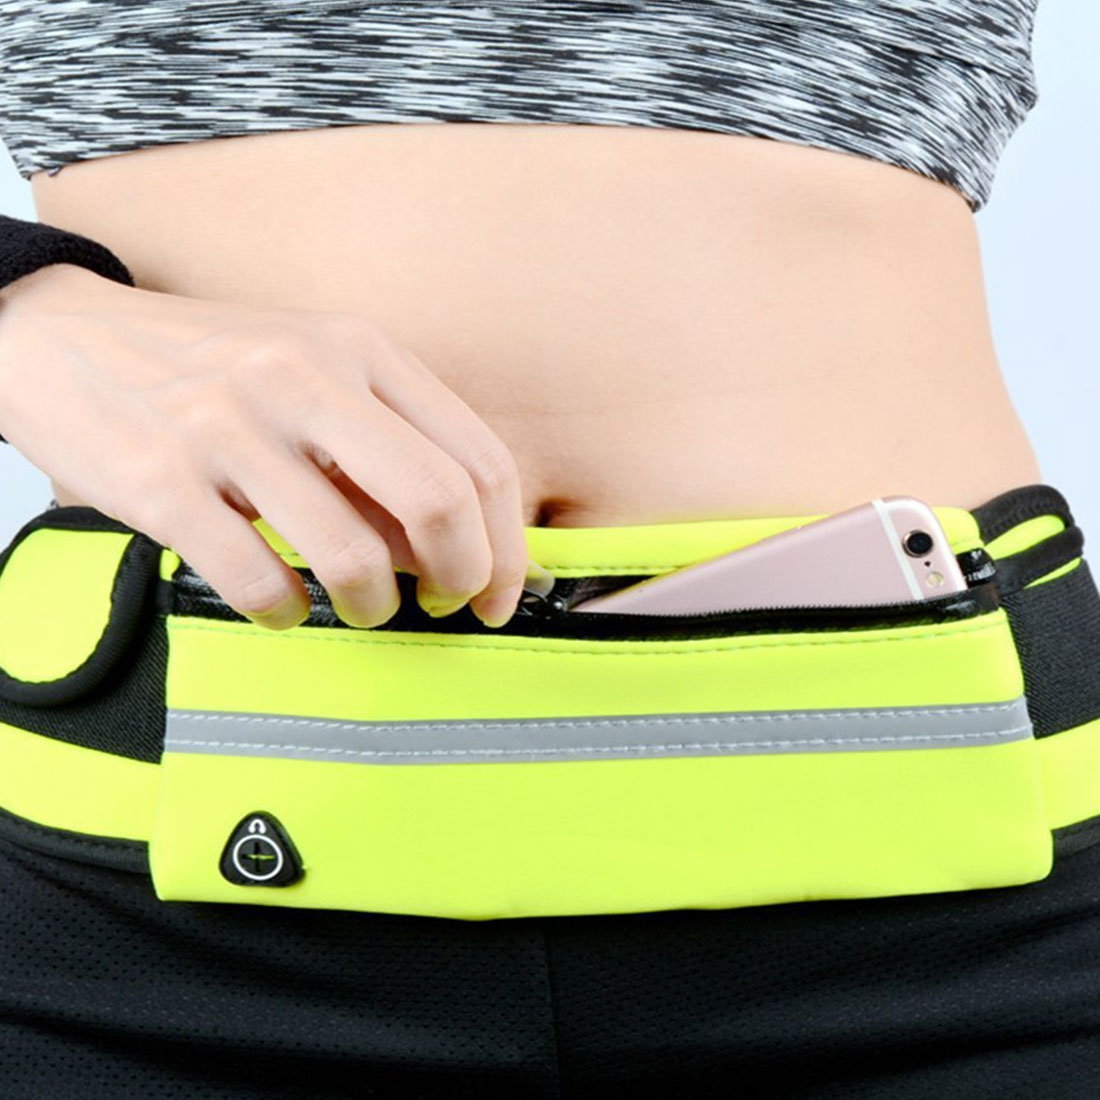 New Running Waist Bag Waterproof Phone Container Jogging Hiking Belt Belly Bag Women Gym Fitness Bag Lady Sport Accessories 38